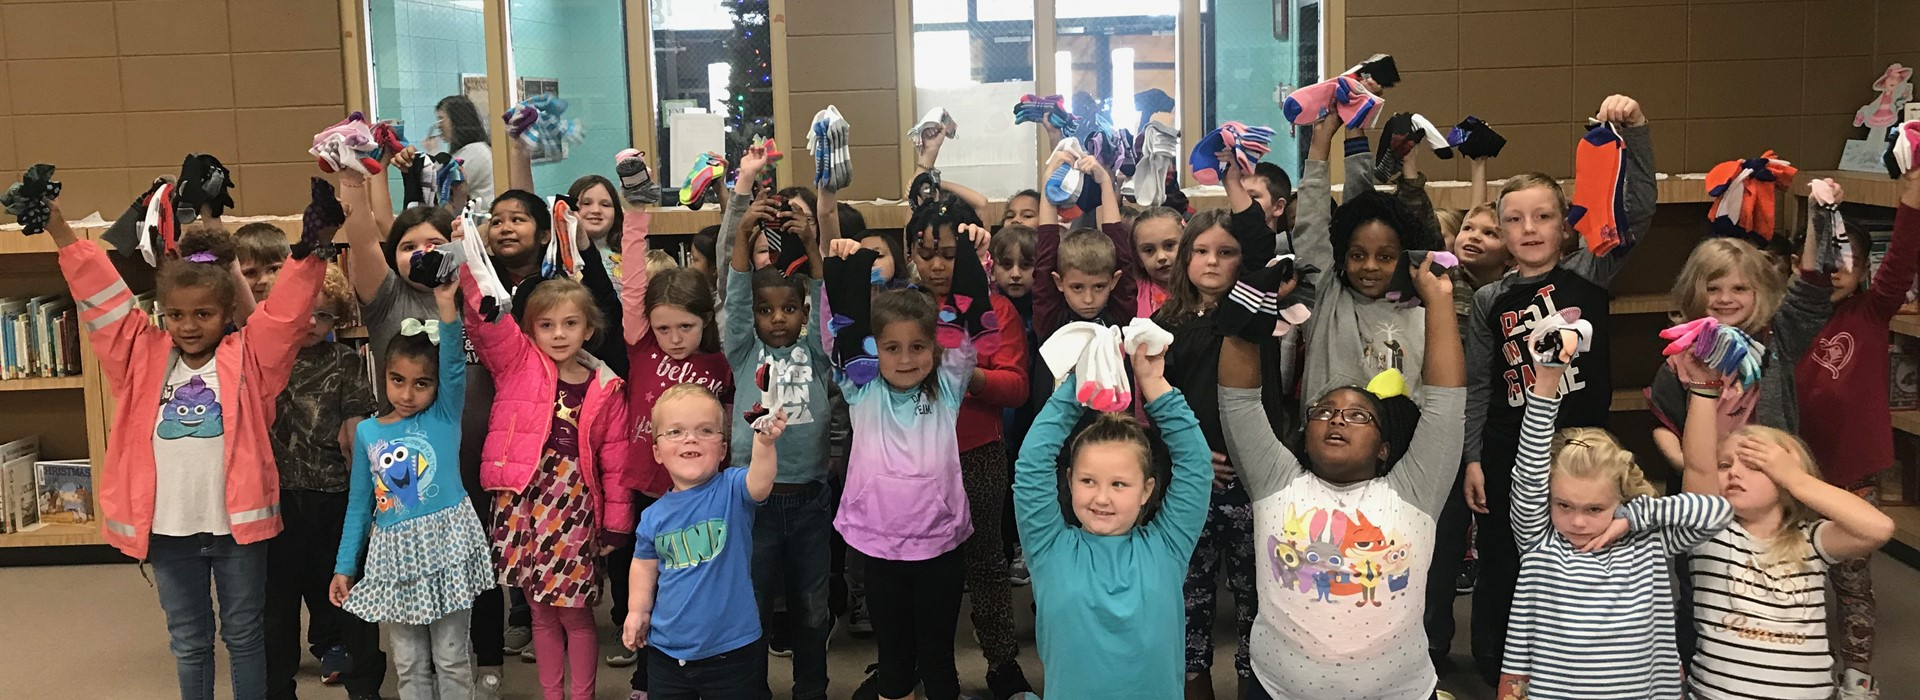 First-graders received socks from Delta Sigma Theta Sorority.